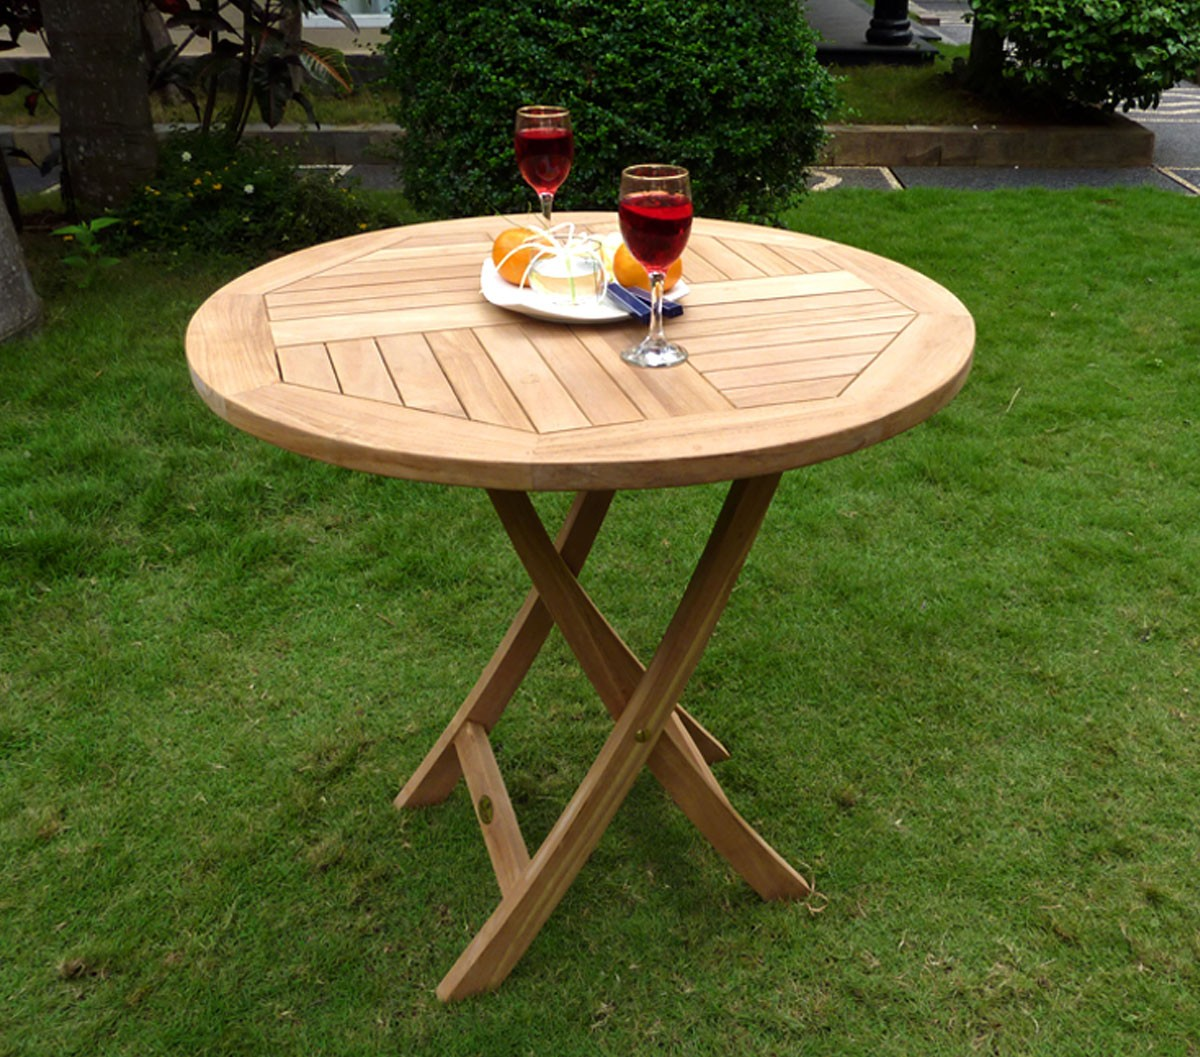 Table De Jardin Teck Pliante Table De Jardin Pliante En Teck Brut Diametre 70 Cm